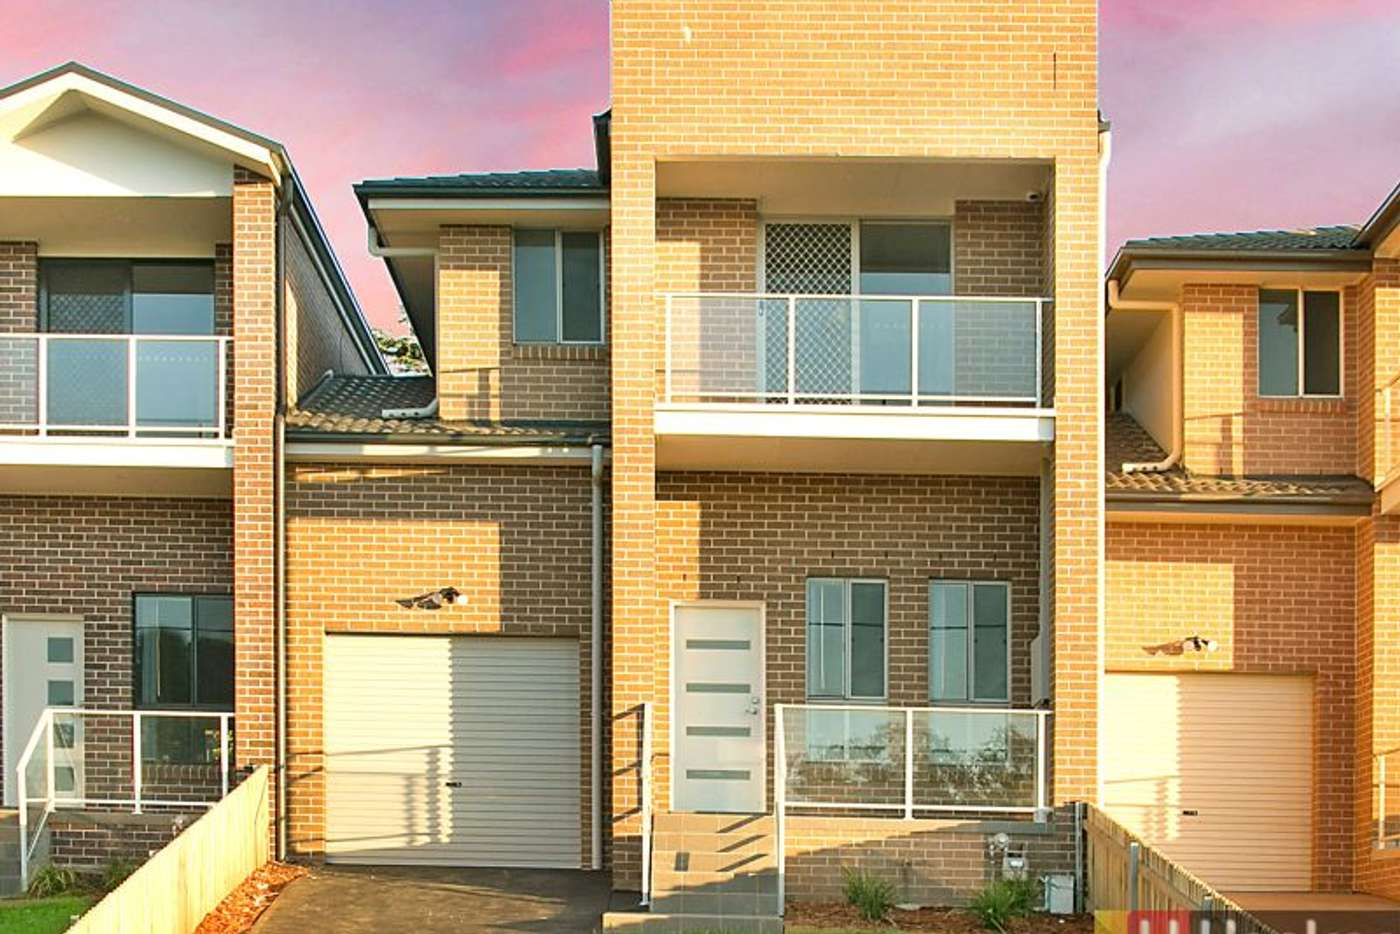 Main view of Homely house listing, 128b Lindesay St, Campbelltown NSW 2560